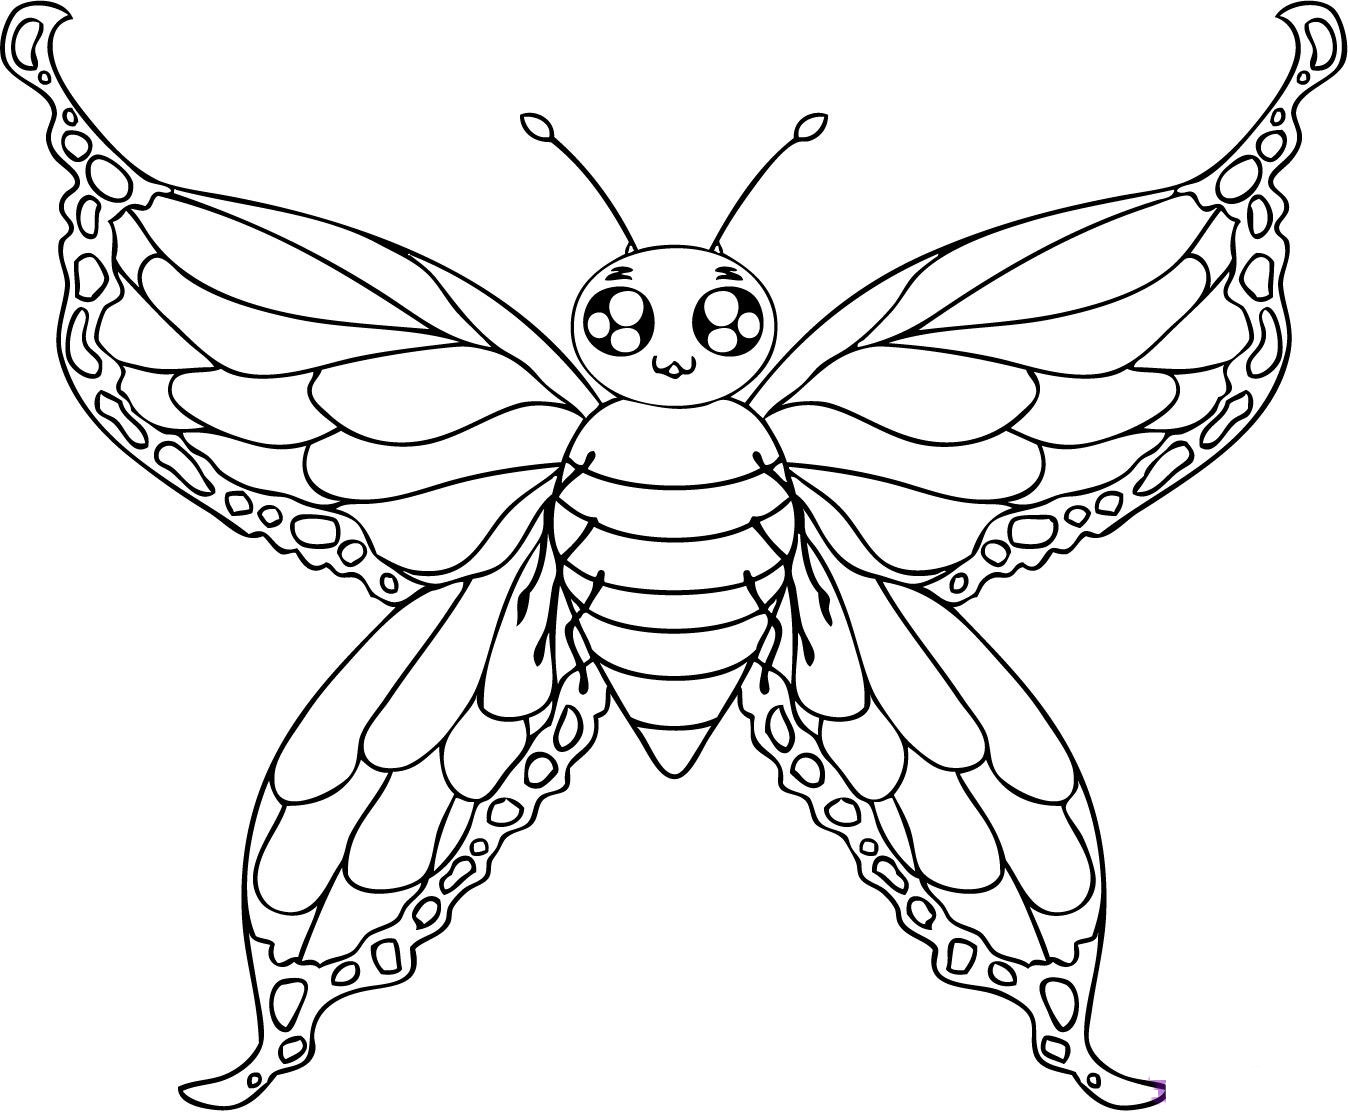 coloring pages butterfly free printable butterfly coloring pages for kids coloring pages butterfly